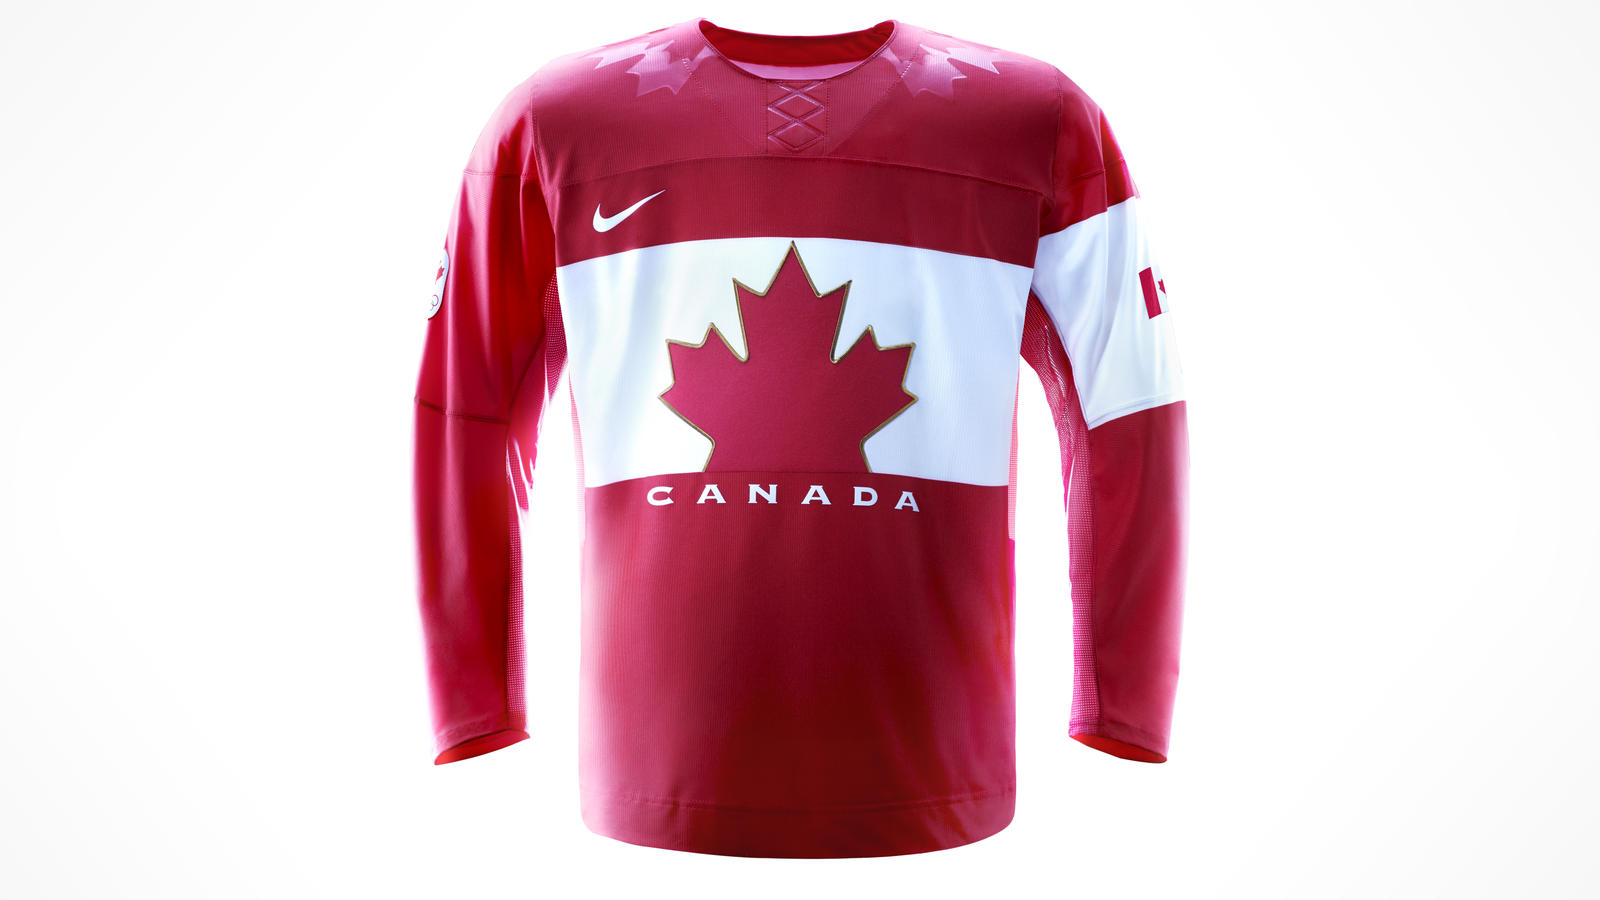 Nike 2014 Hockey Jersey Red